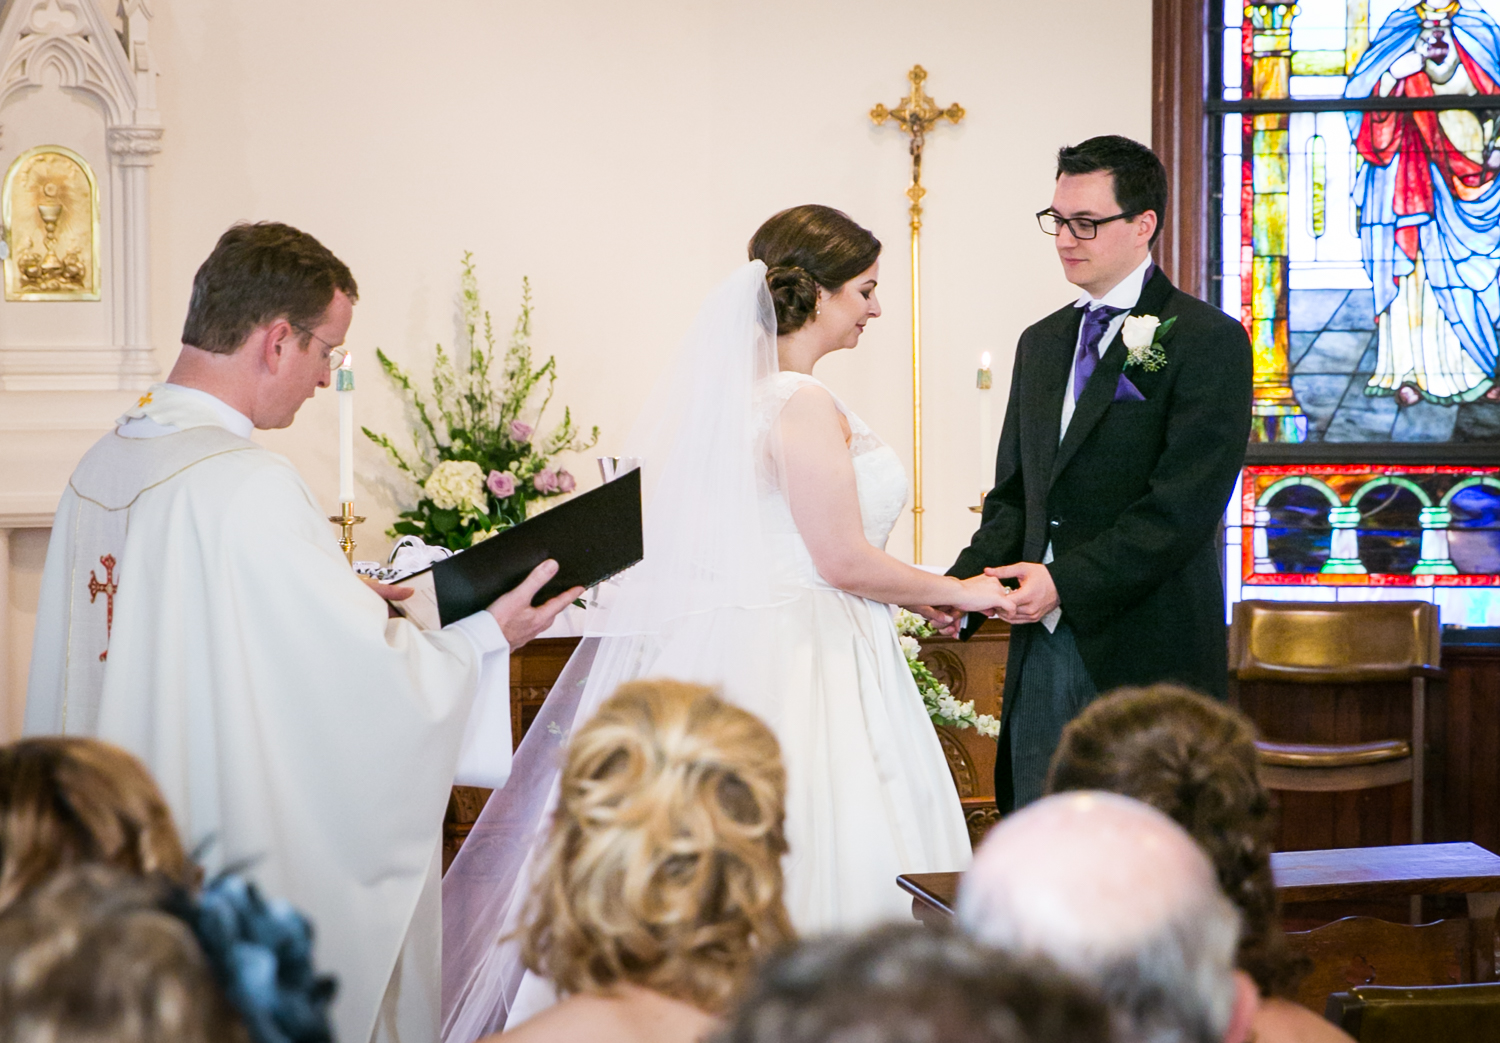 Bride and groom exchanging vows at St. James Church